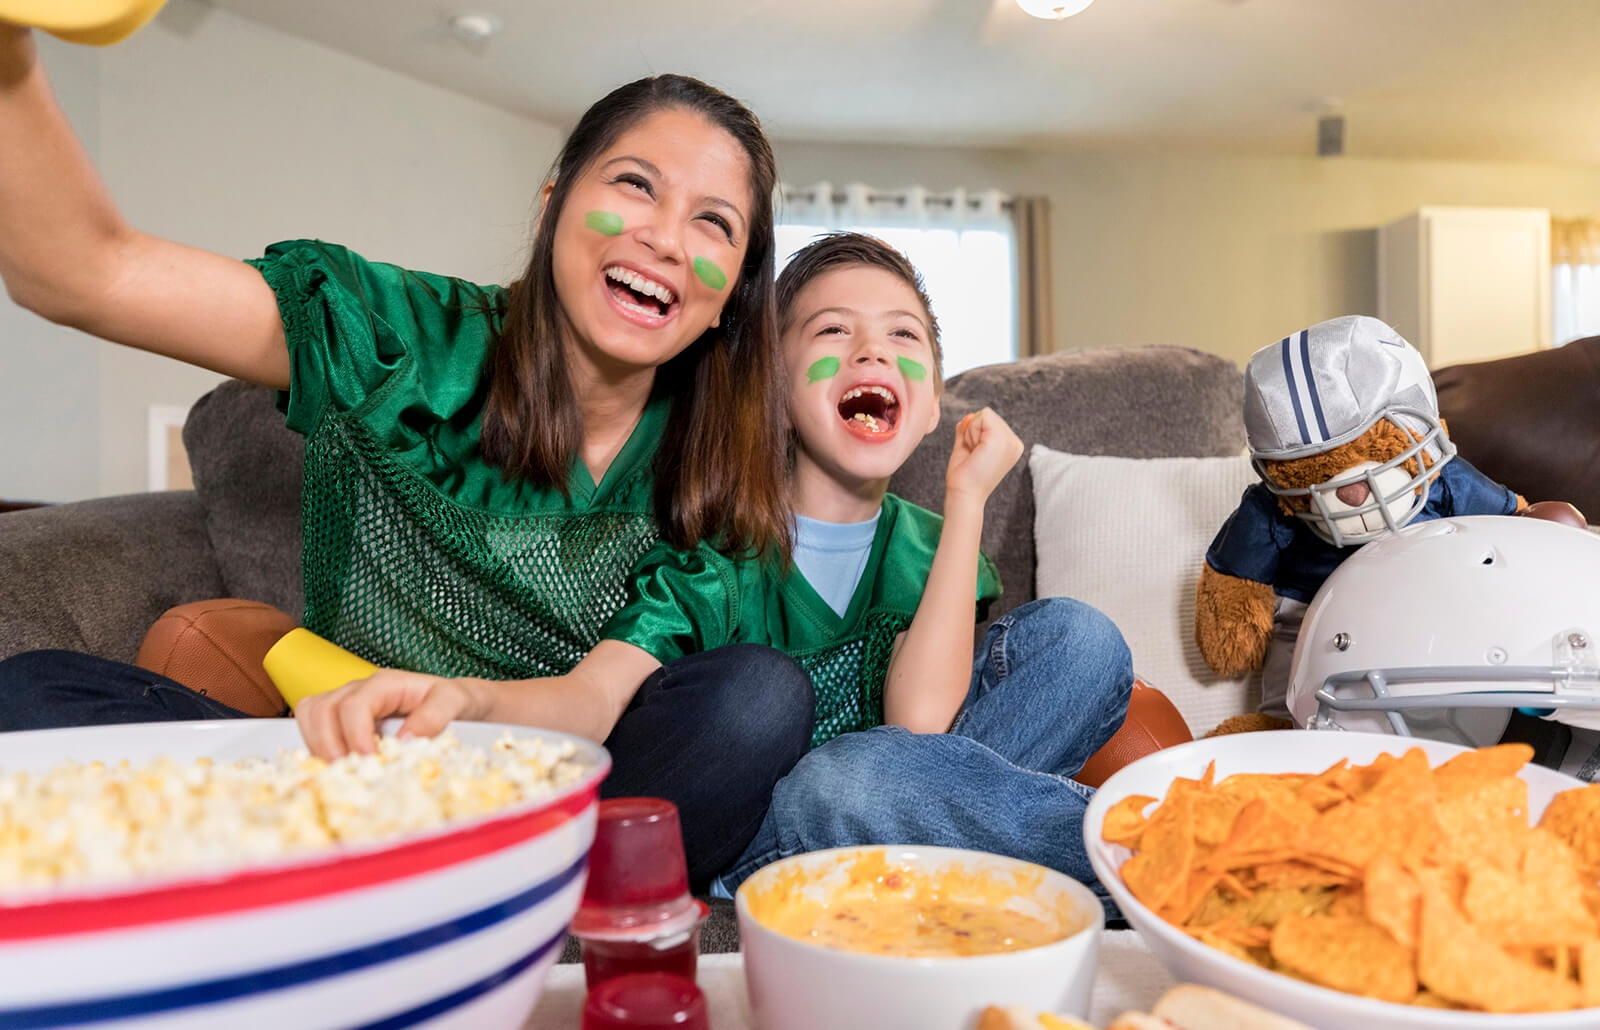 Family Fun During the Super Bowl